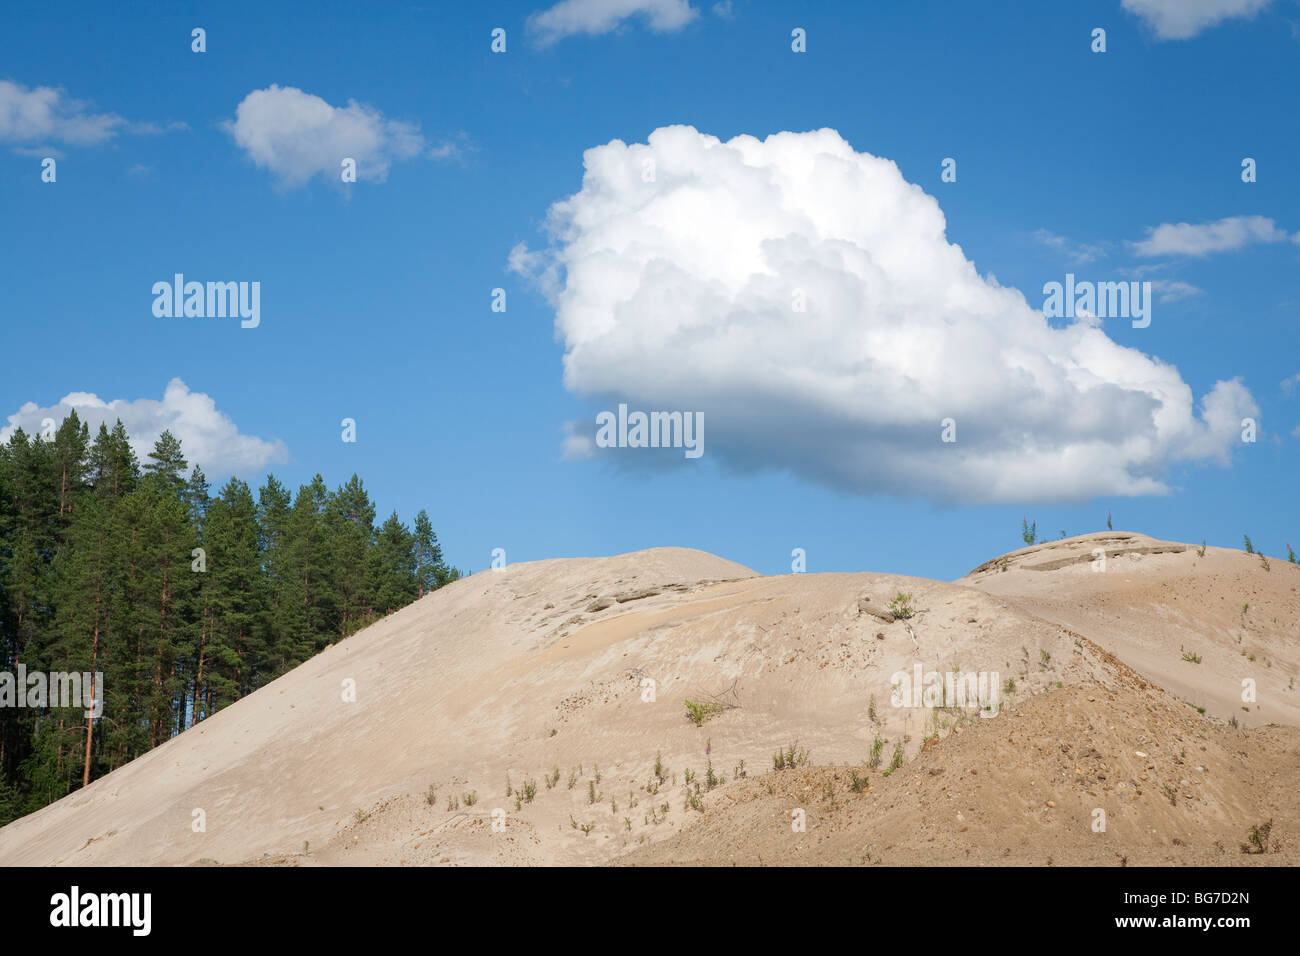 Pile of sand on a sandpit - Stock Image